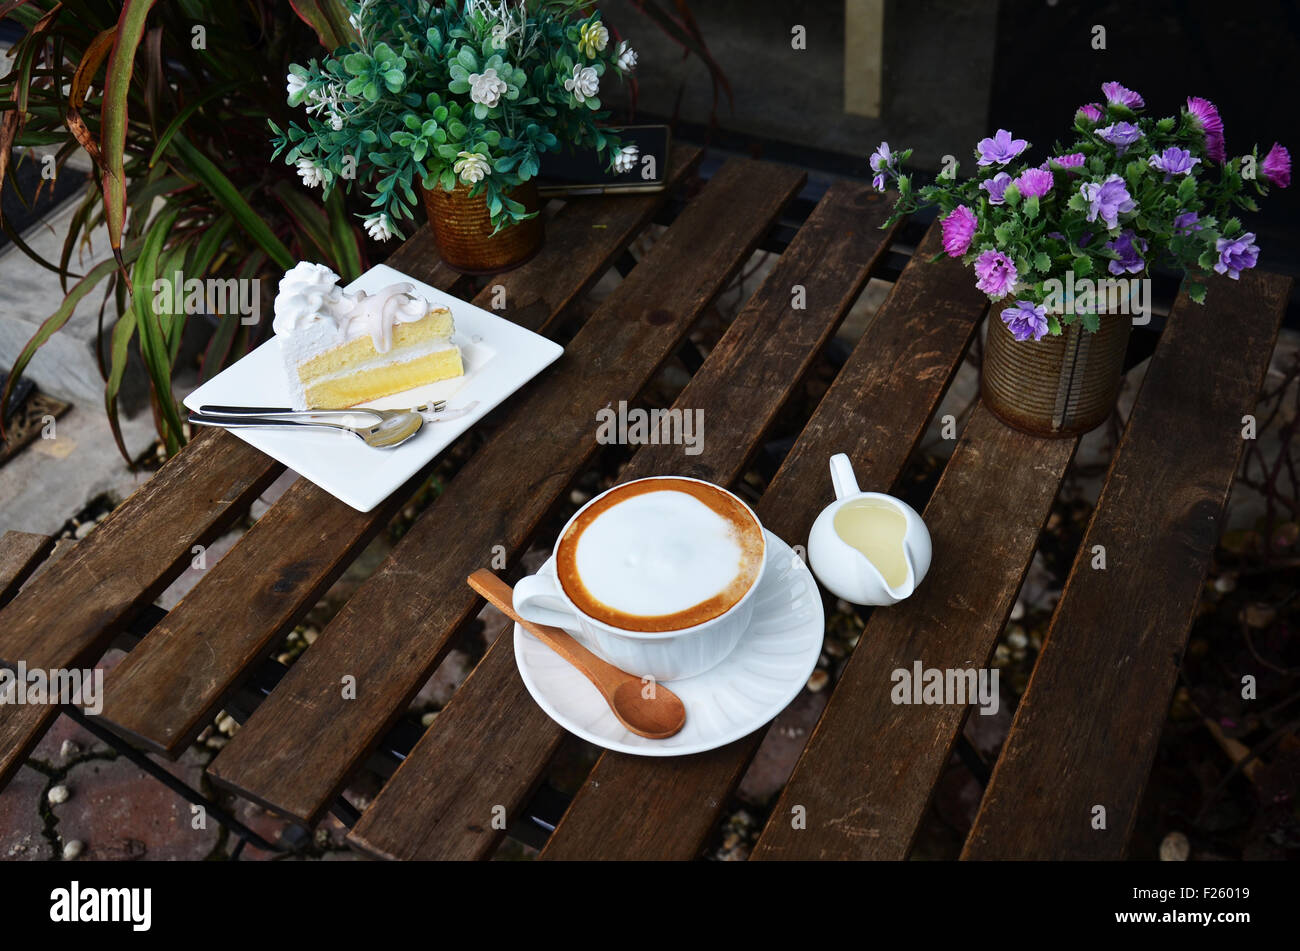 Hot Coffee And Coconut Cake On Table In Garden Of Coffee Shop Stock Photo Alamy